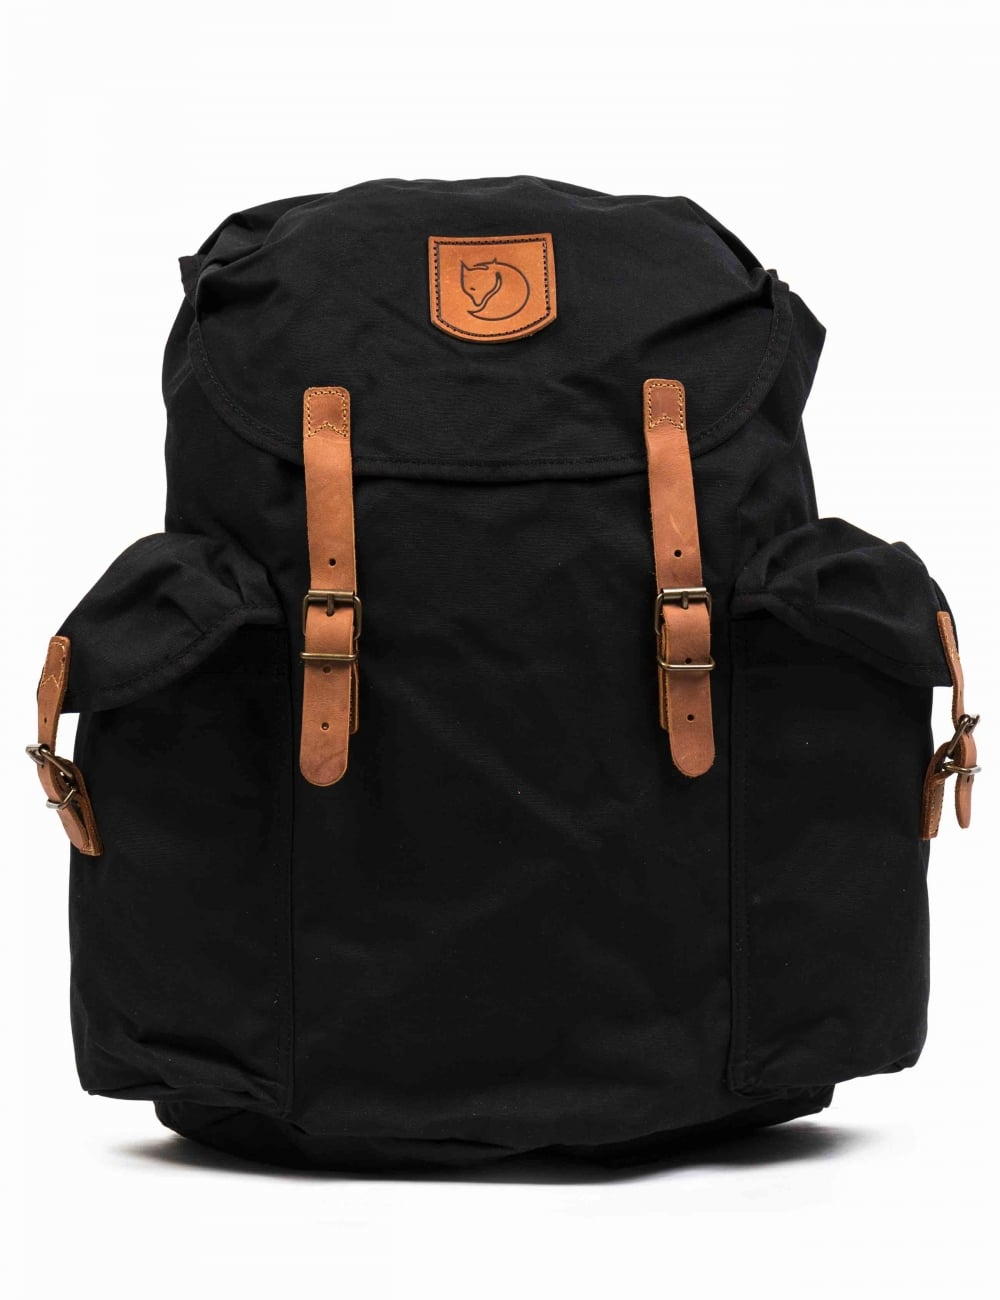 outlet on sale how to buy 50% off Ovik Backpack 20L - Black